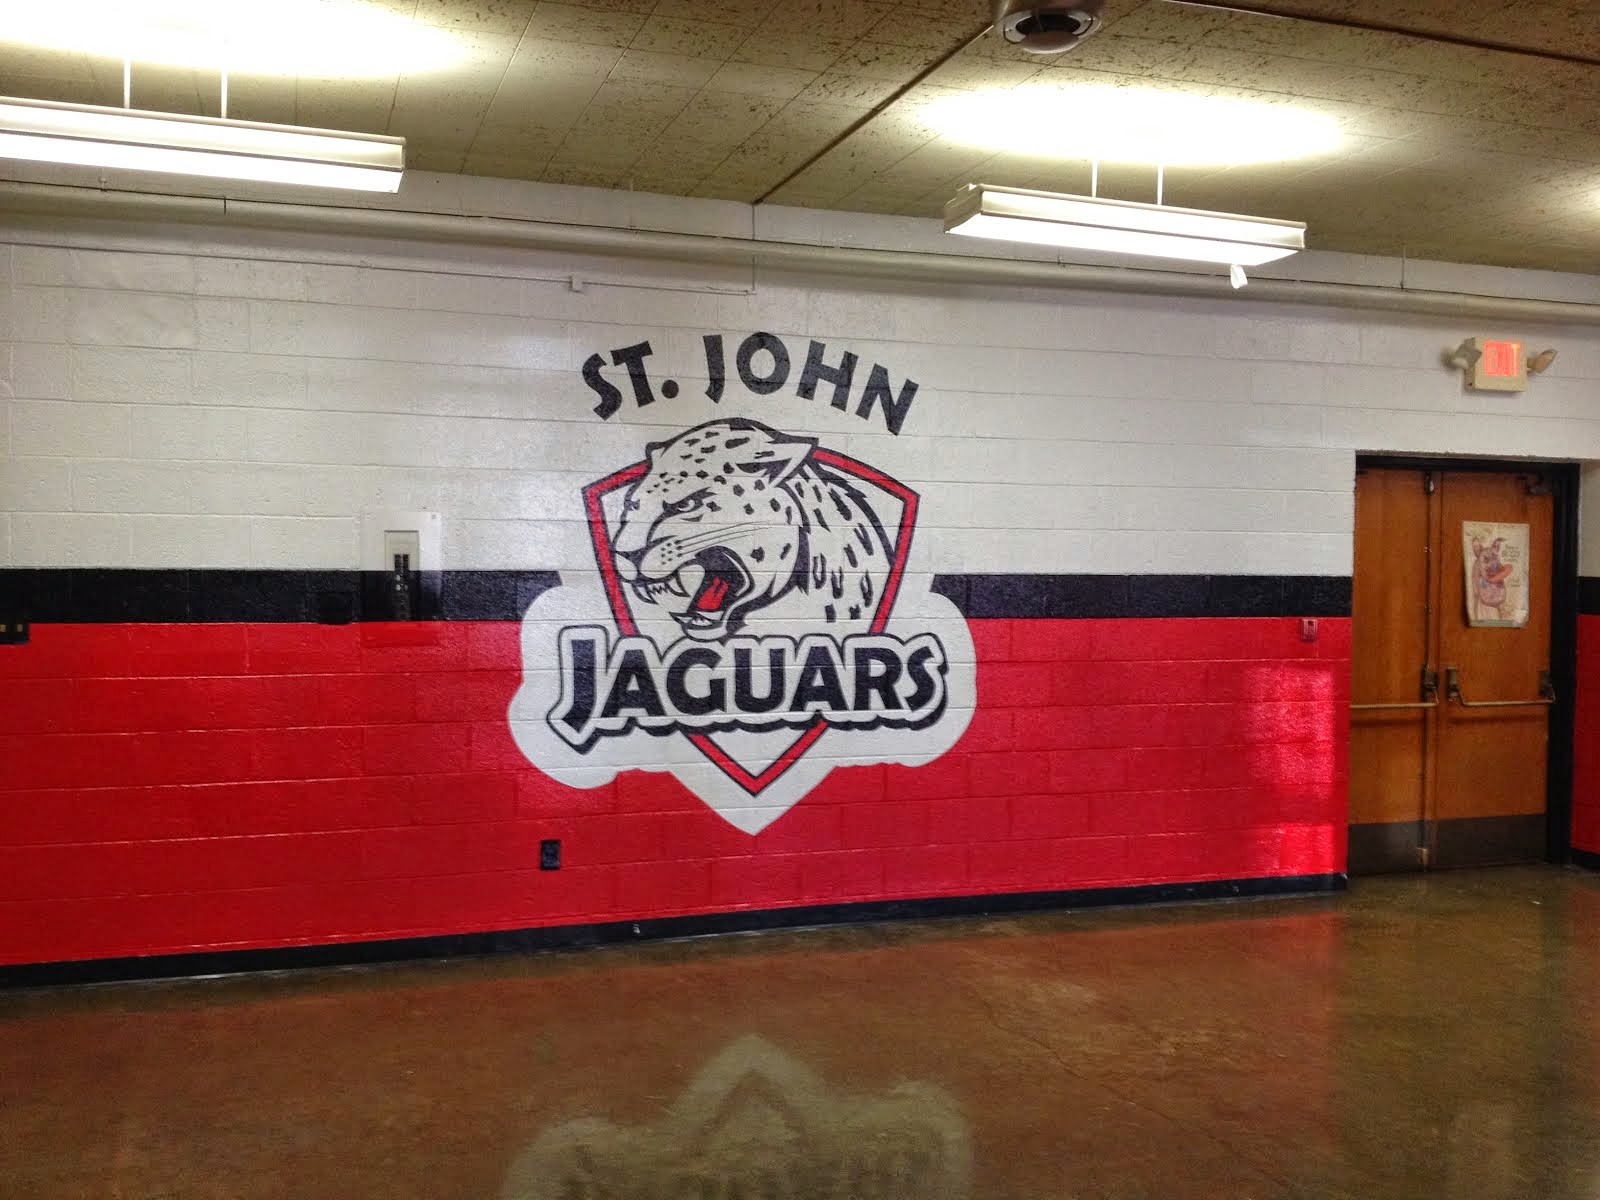 St. John's cafeteria